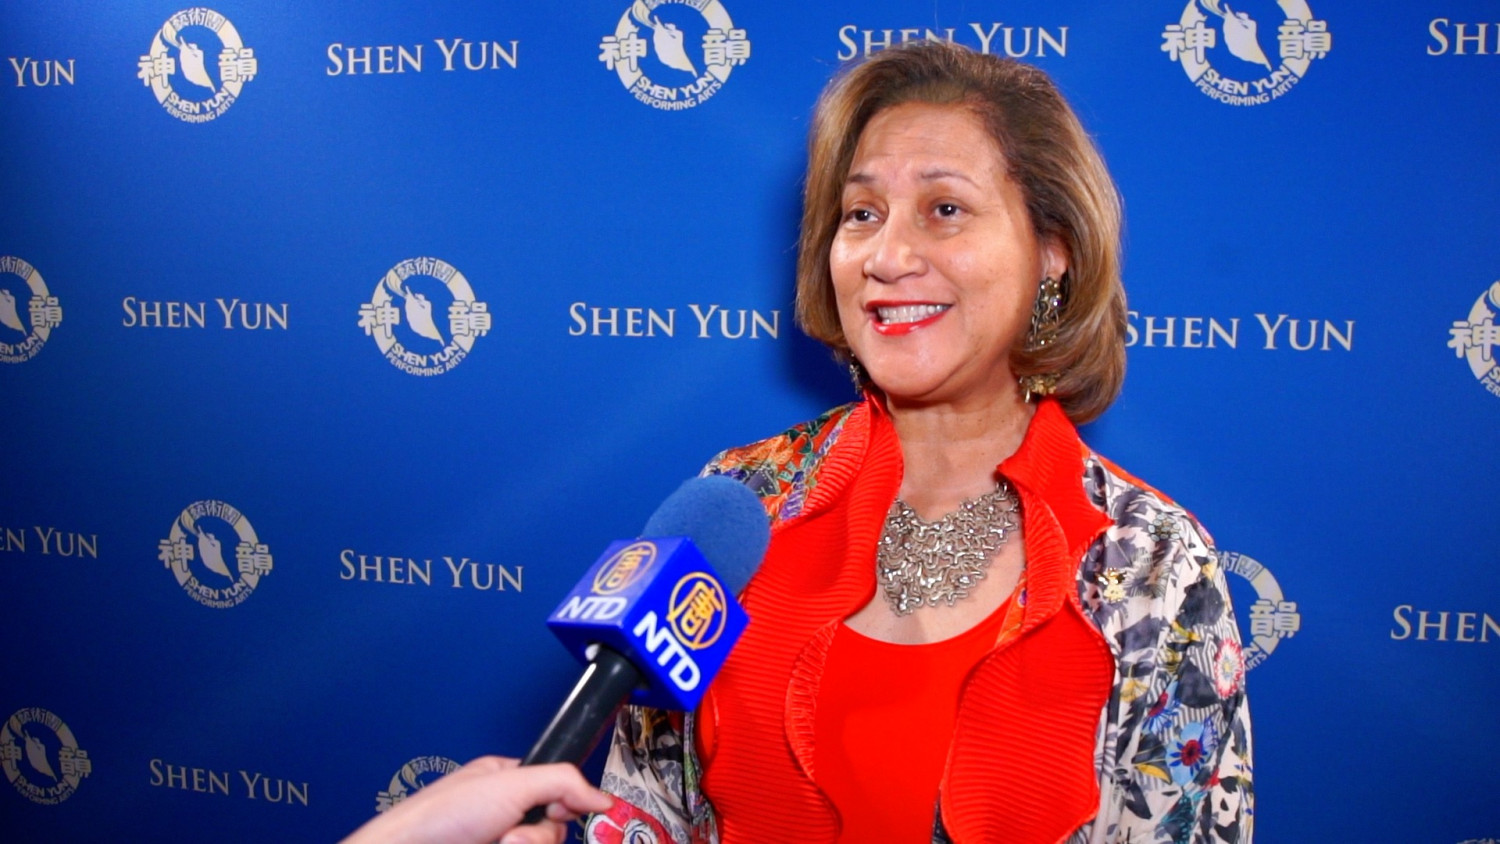 CEO Returns to See Shen Yun for the Fourth Time